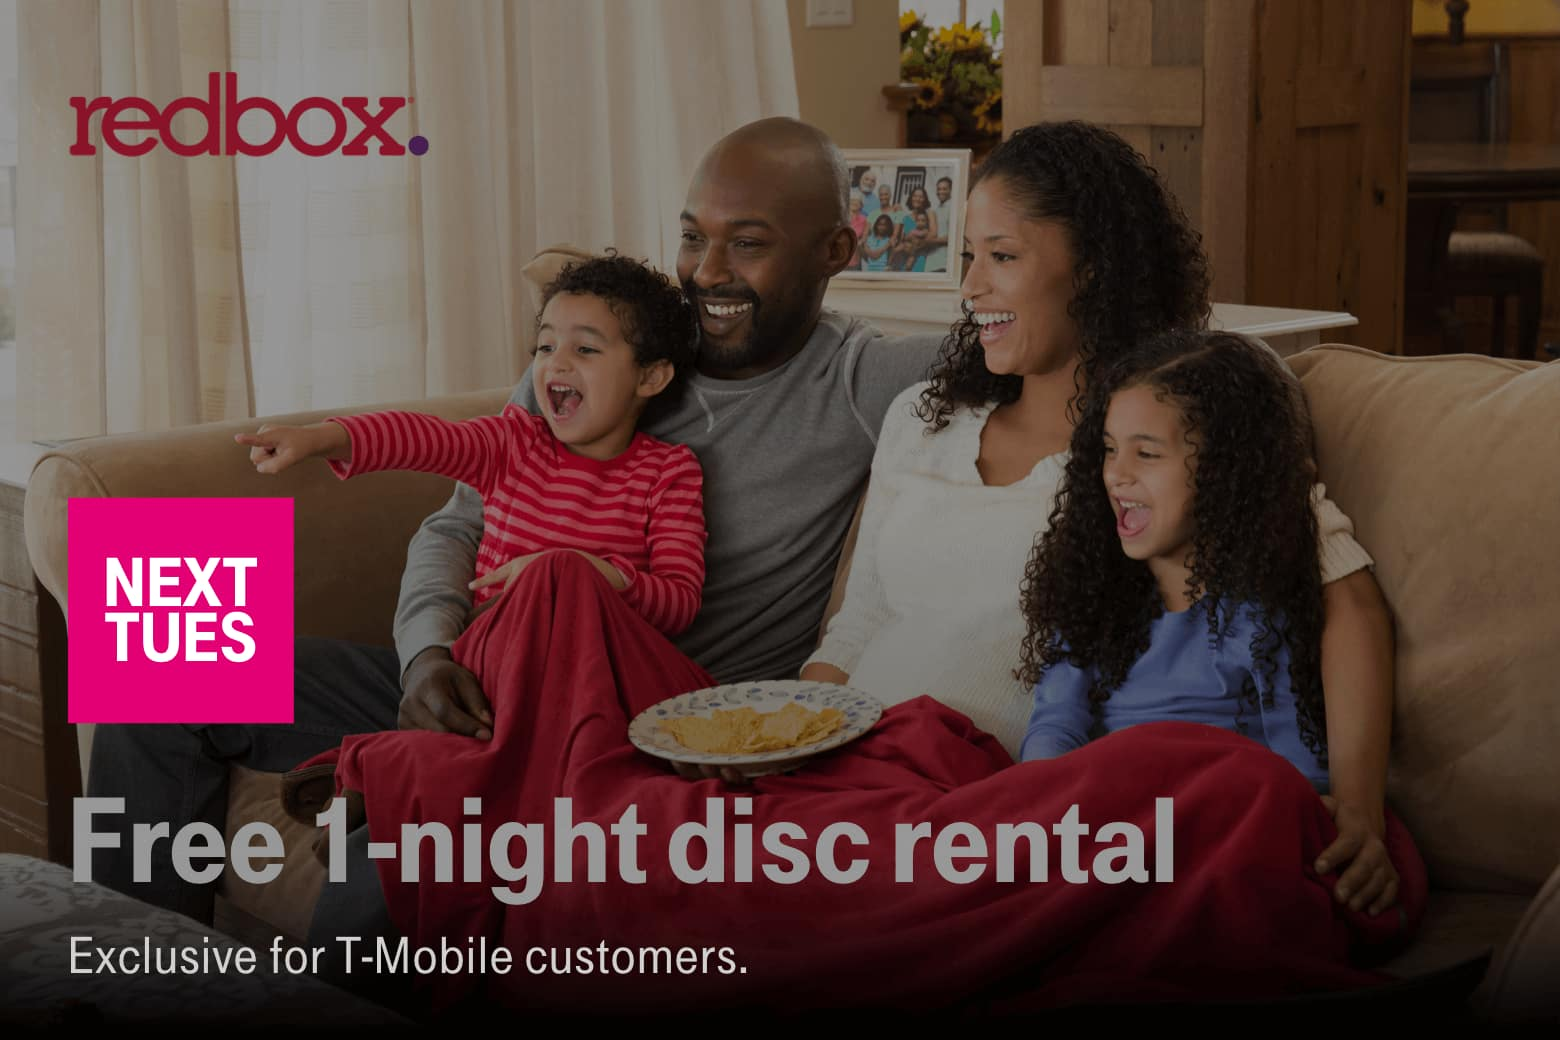 T-Mobile Customers 12/03: Free Redbox, Pizza Hut $7.99 Large 2 topping pizza +8 bone out wings, Feeding America: Give a Meal